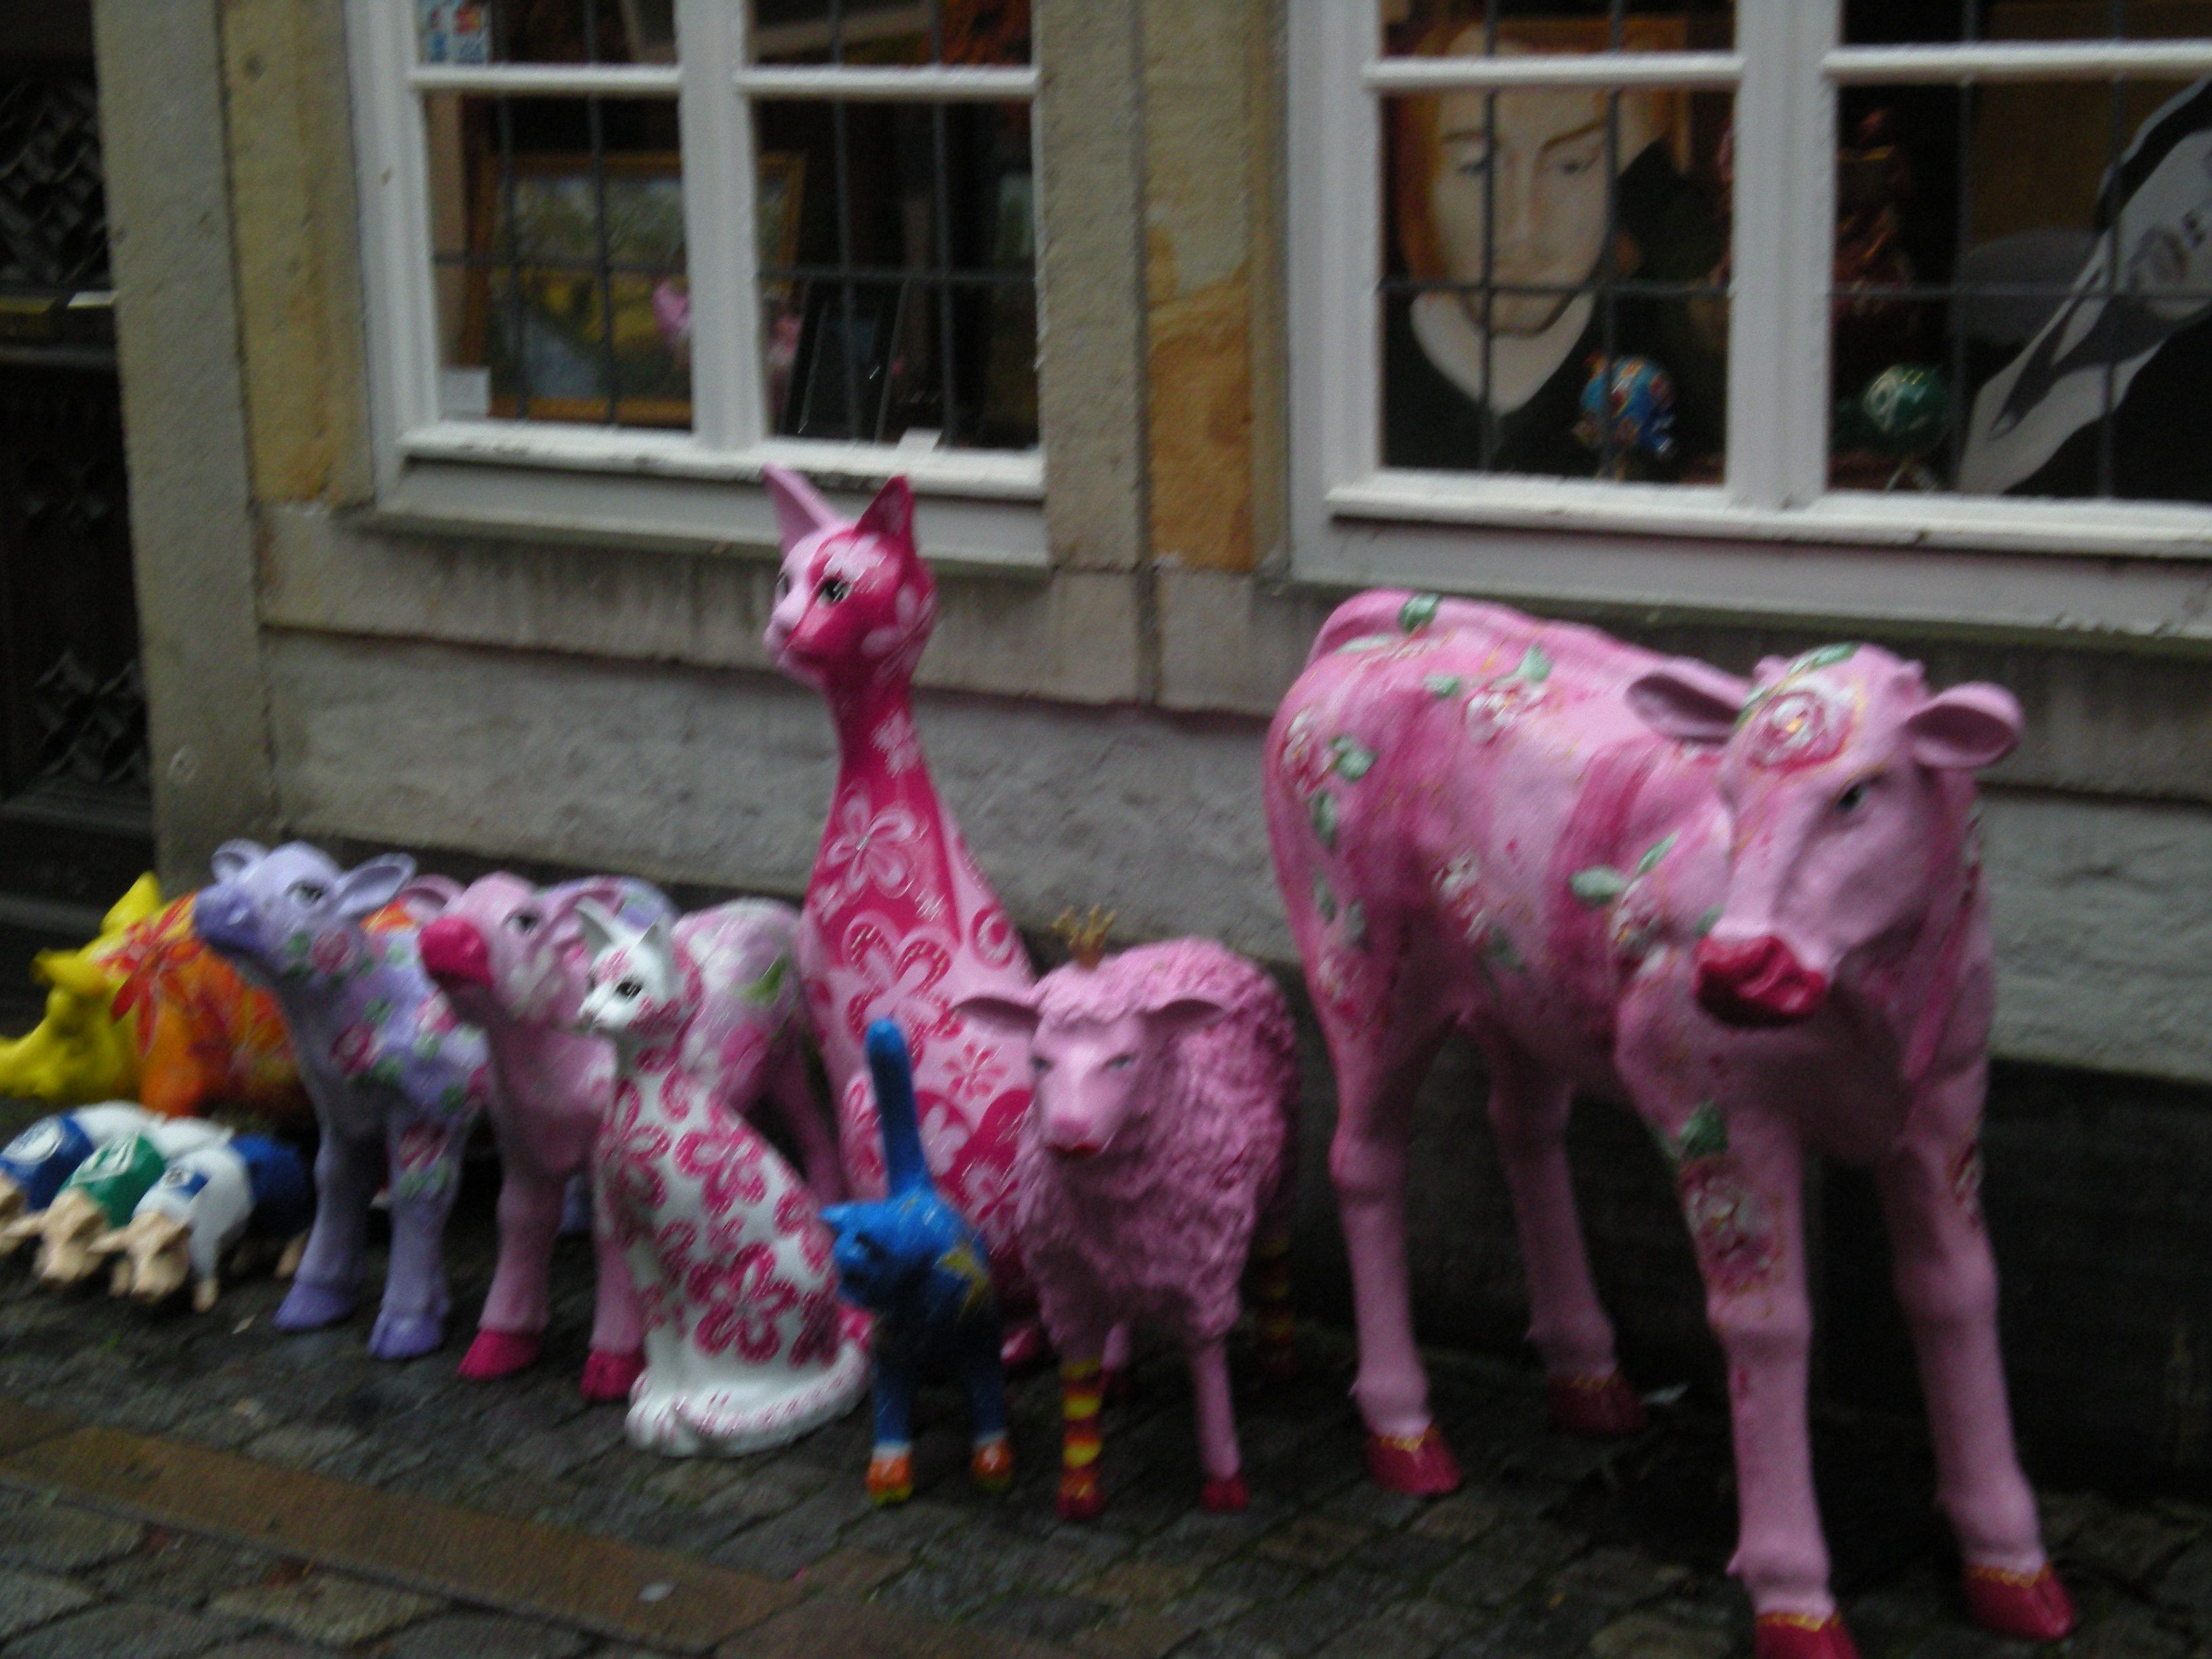 livestock in Bremen, Germany